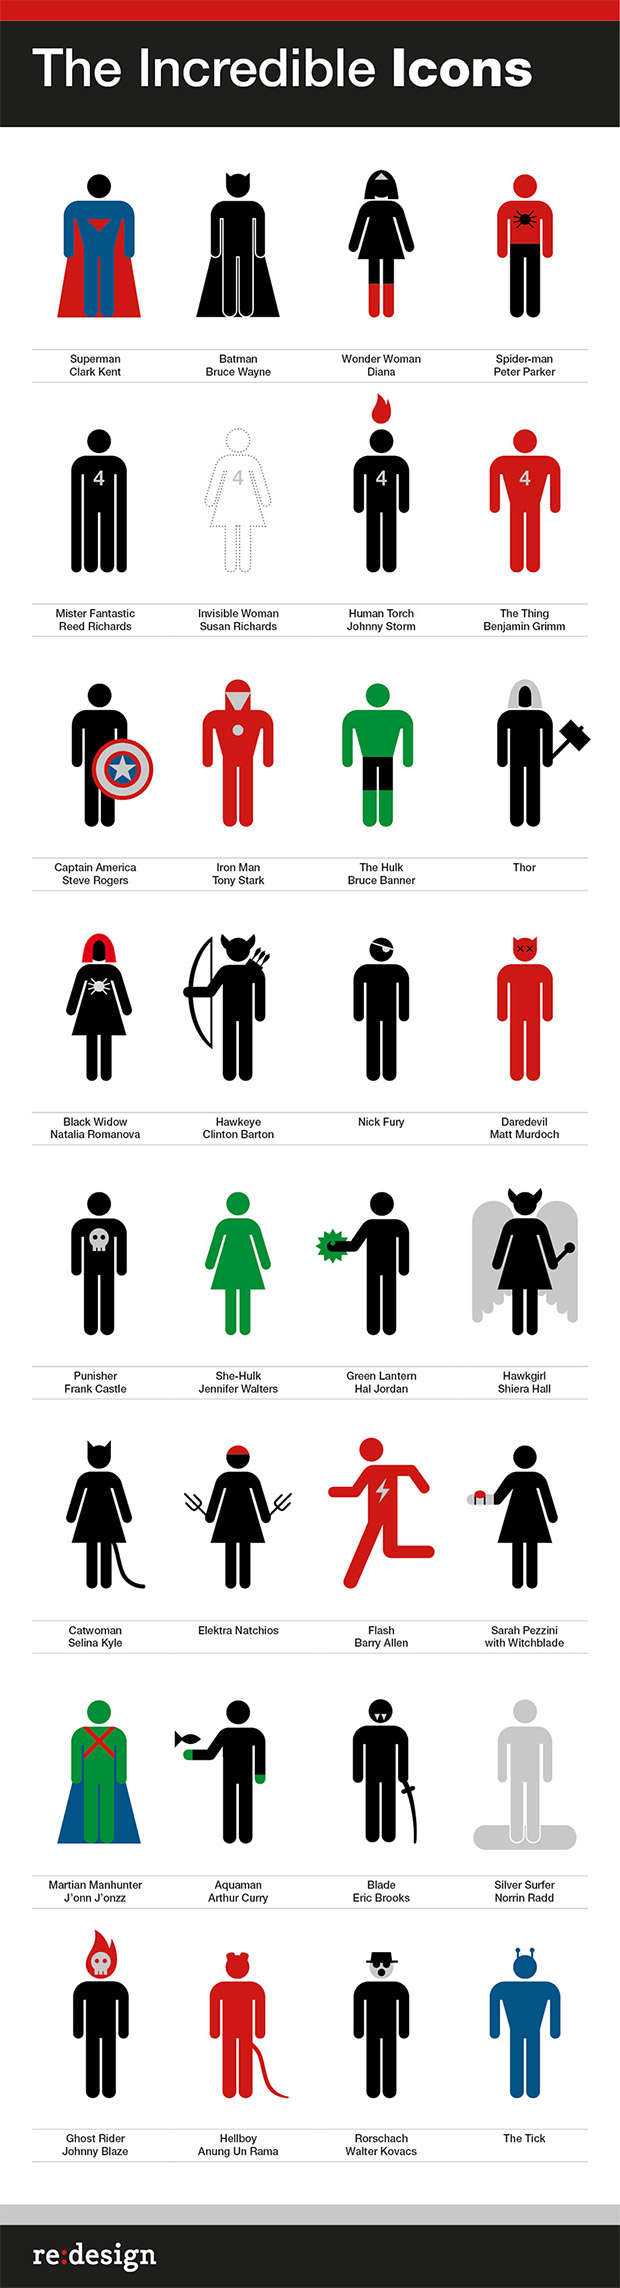 Superhero and Supervillain Iconography